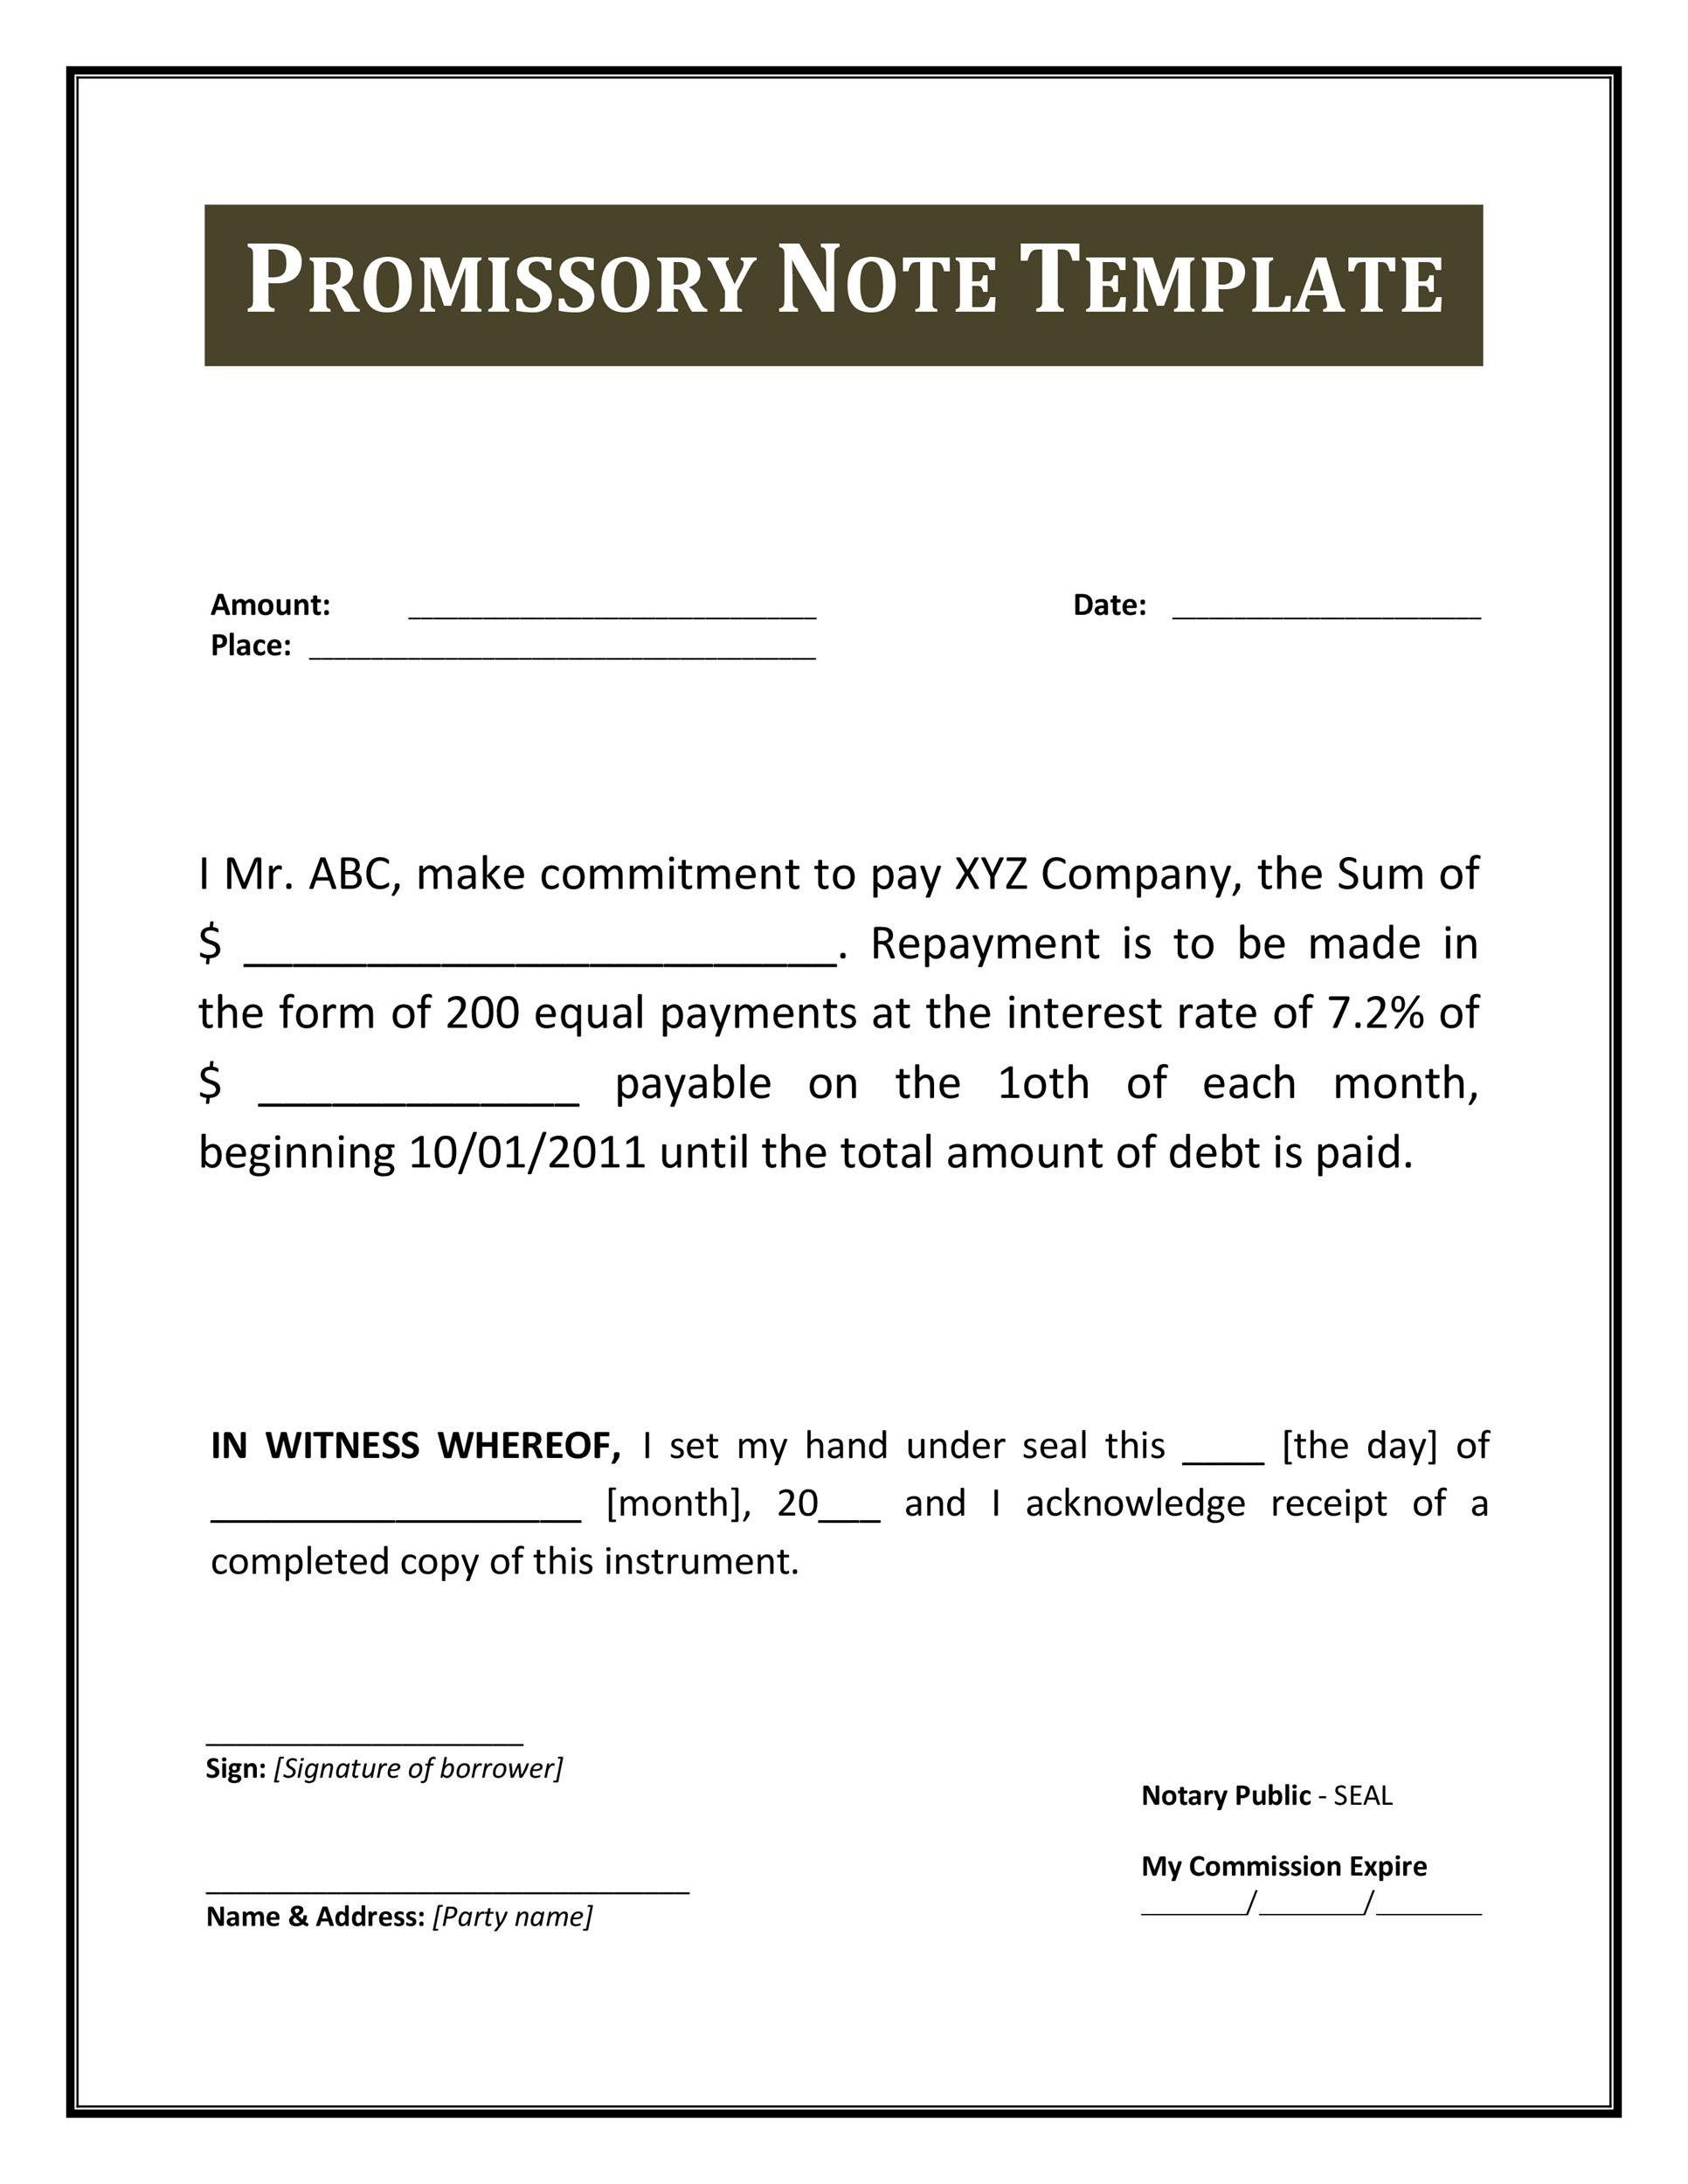 Simple promissory note template 1549384 metabo01info